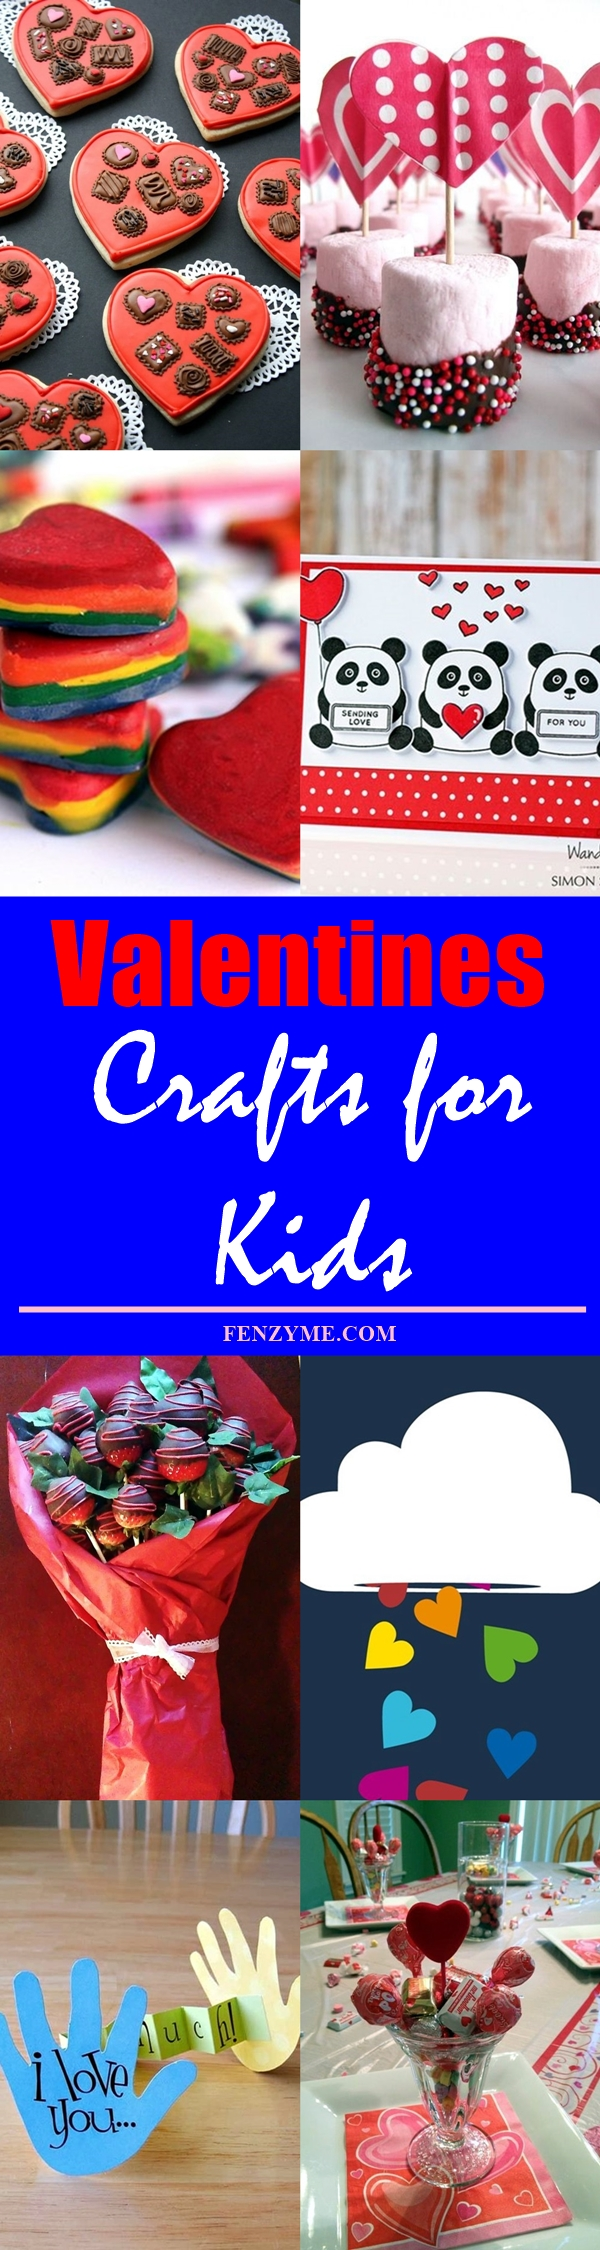 valentines-crafts-for-kids-12-tile